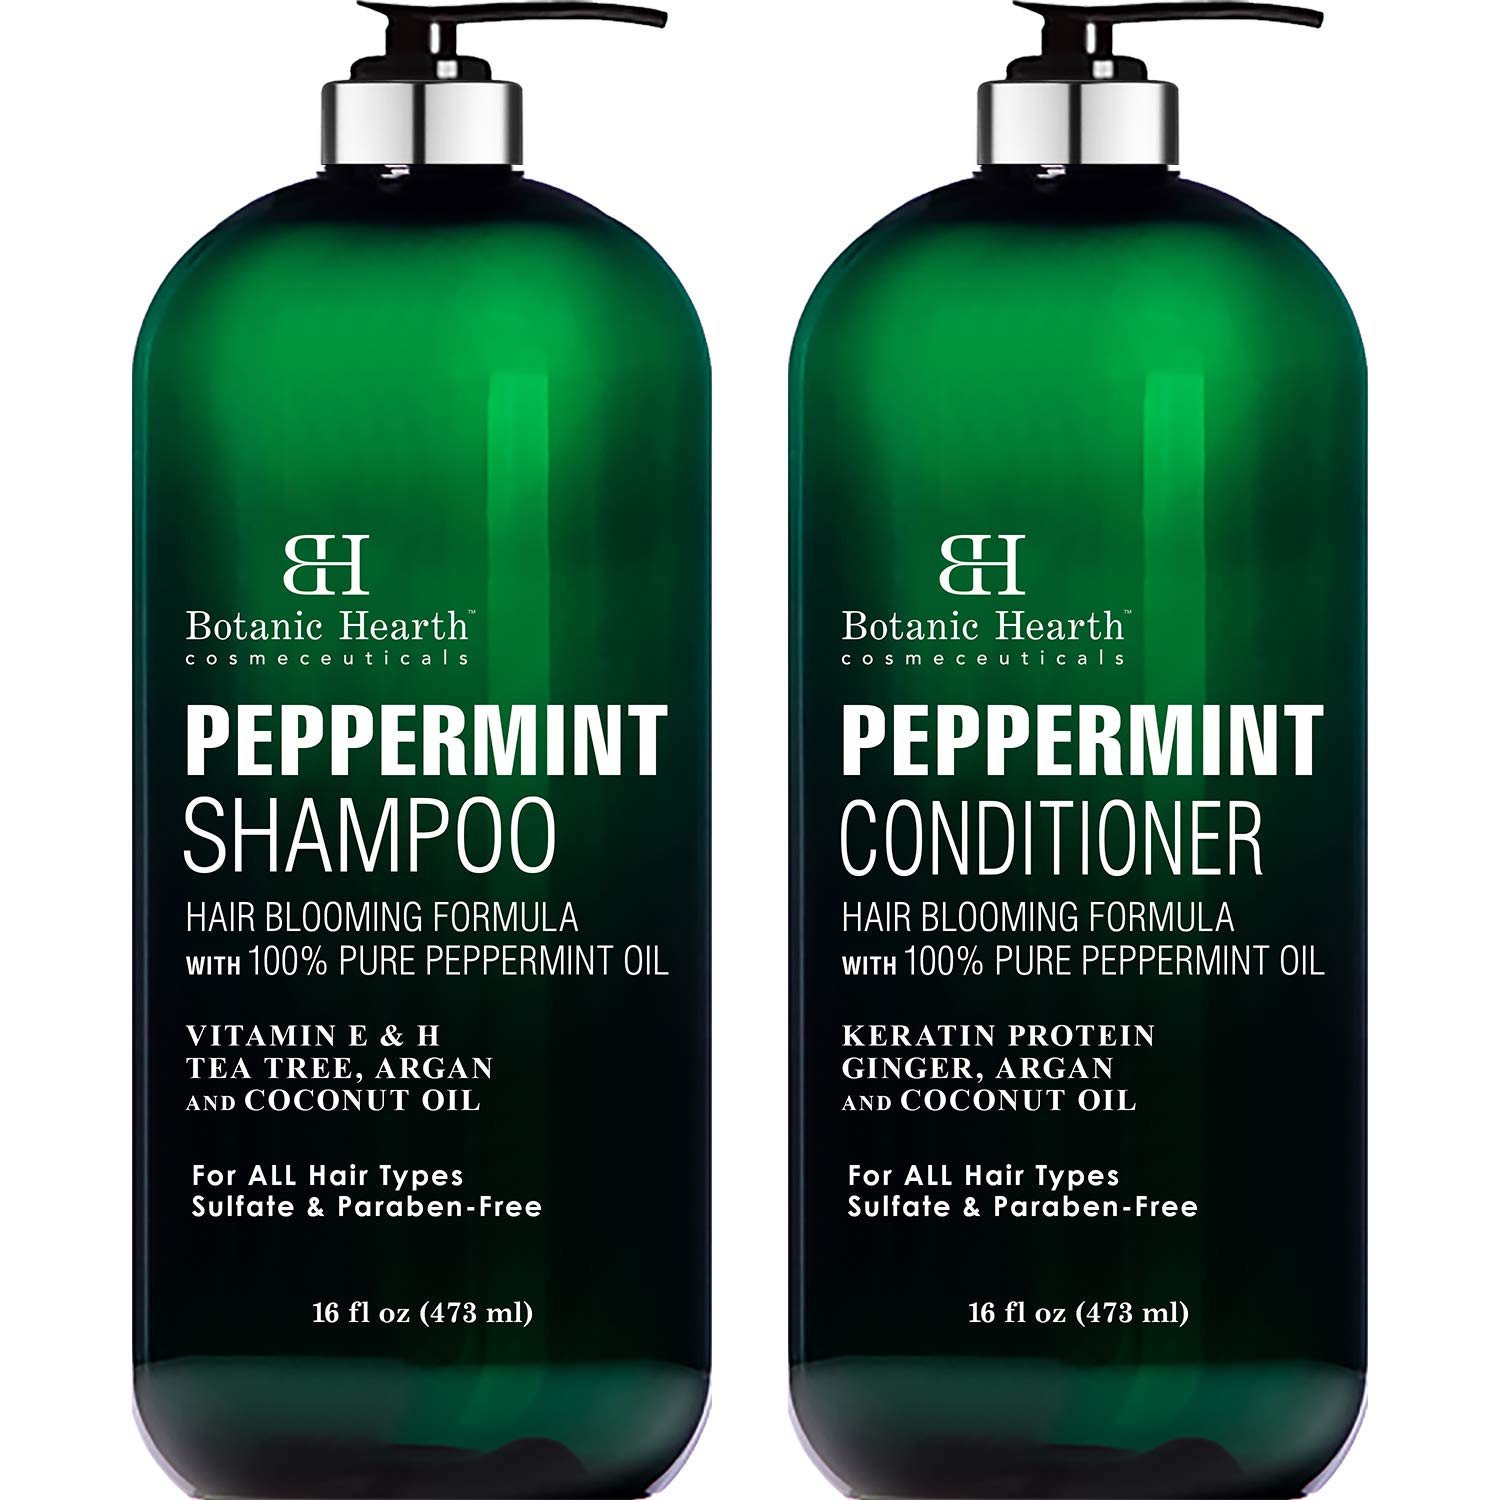 BOTANIC HEARTH Peppermint Oil Shampoo and Conditioner Set - Hair Blooming Formula with Keratin for Thinning Hair - Fights Hair Loss, Promotes Hair Growth-Sulfate Free for Men and Women - 16 fl oz x 2 by Botanic Hearth